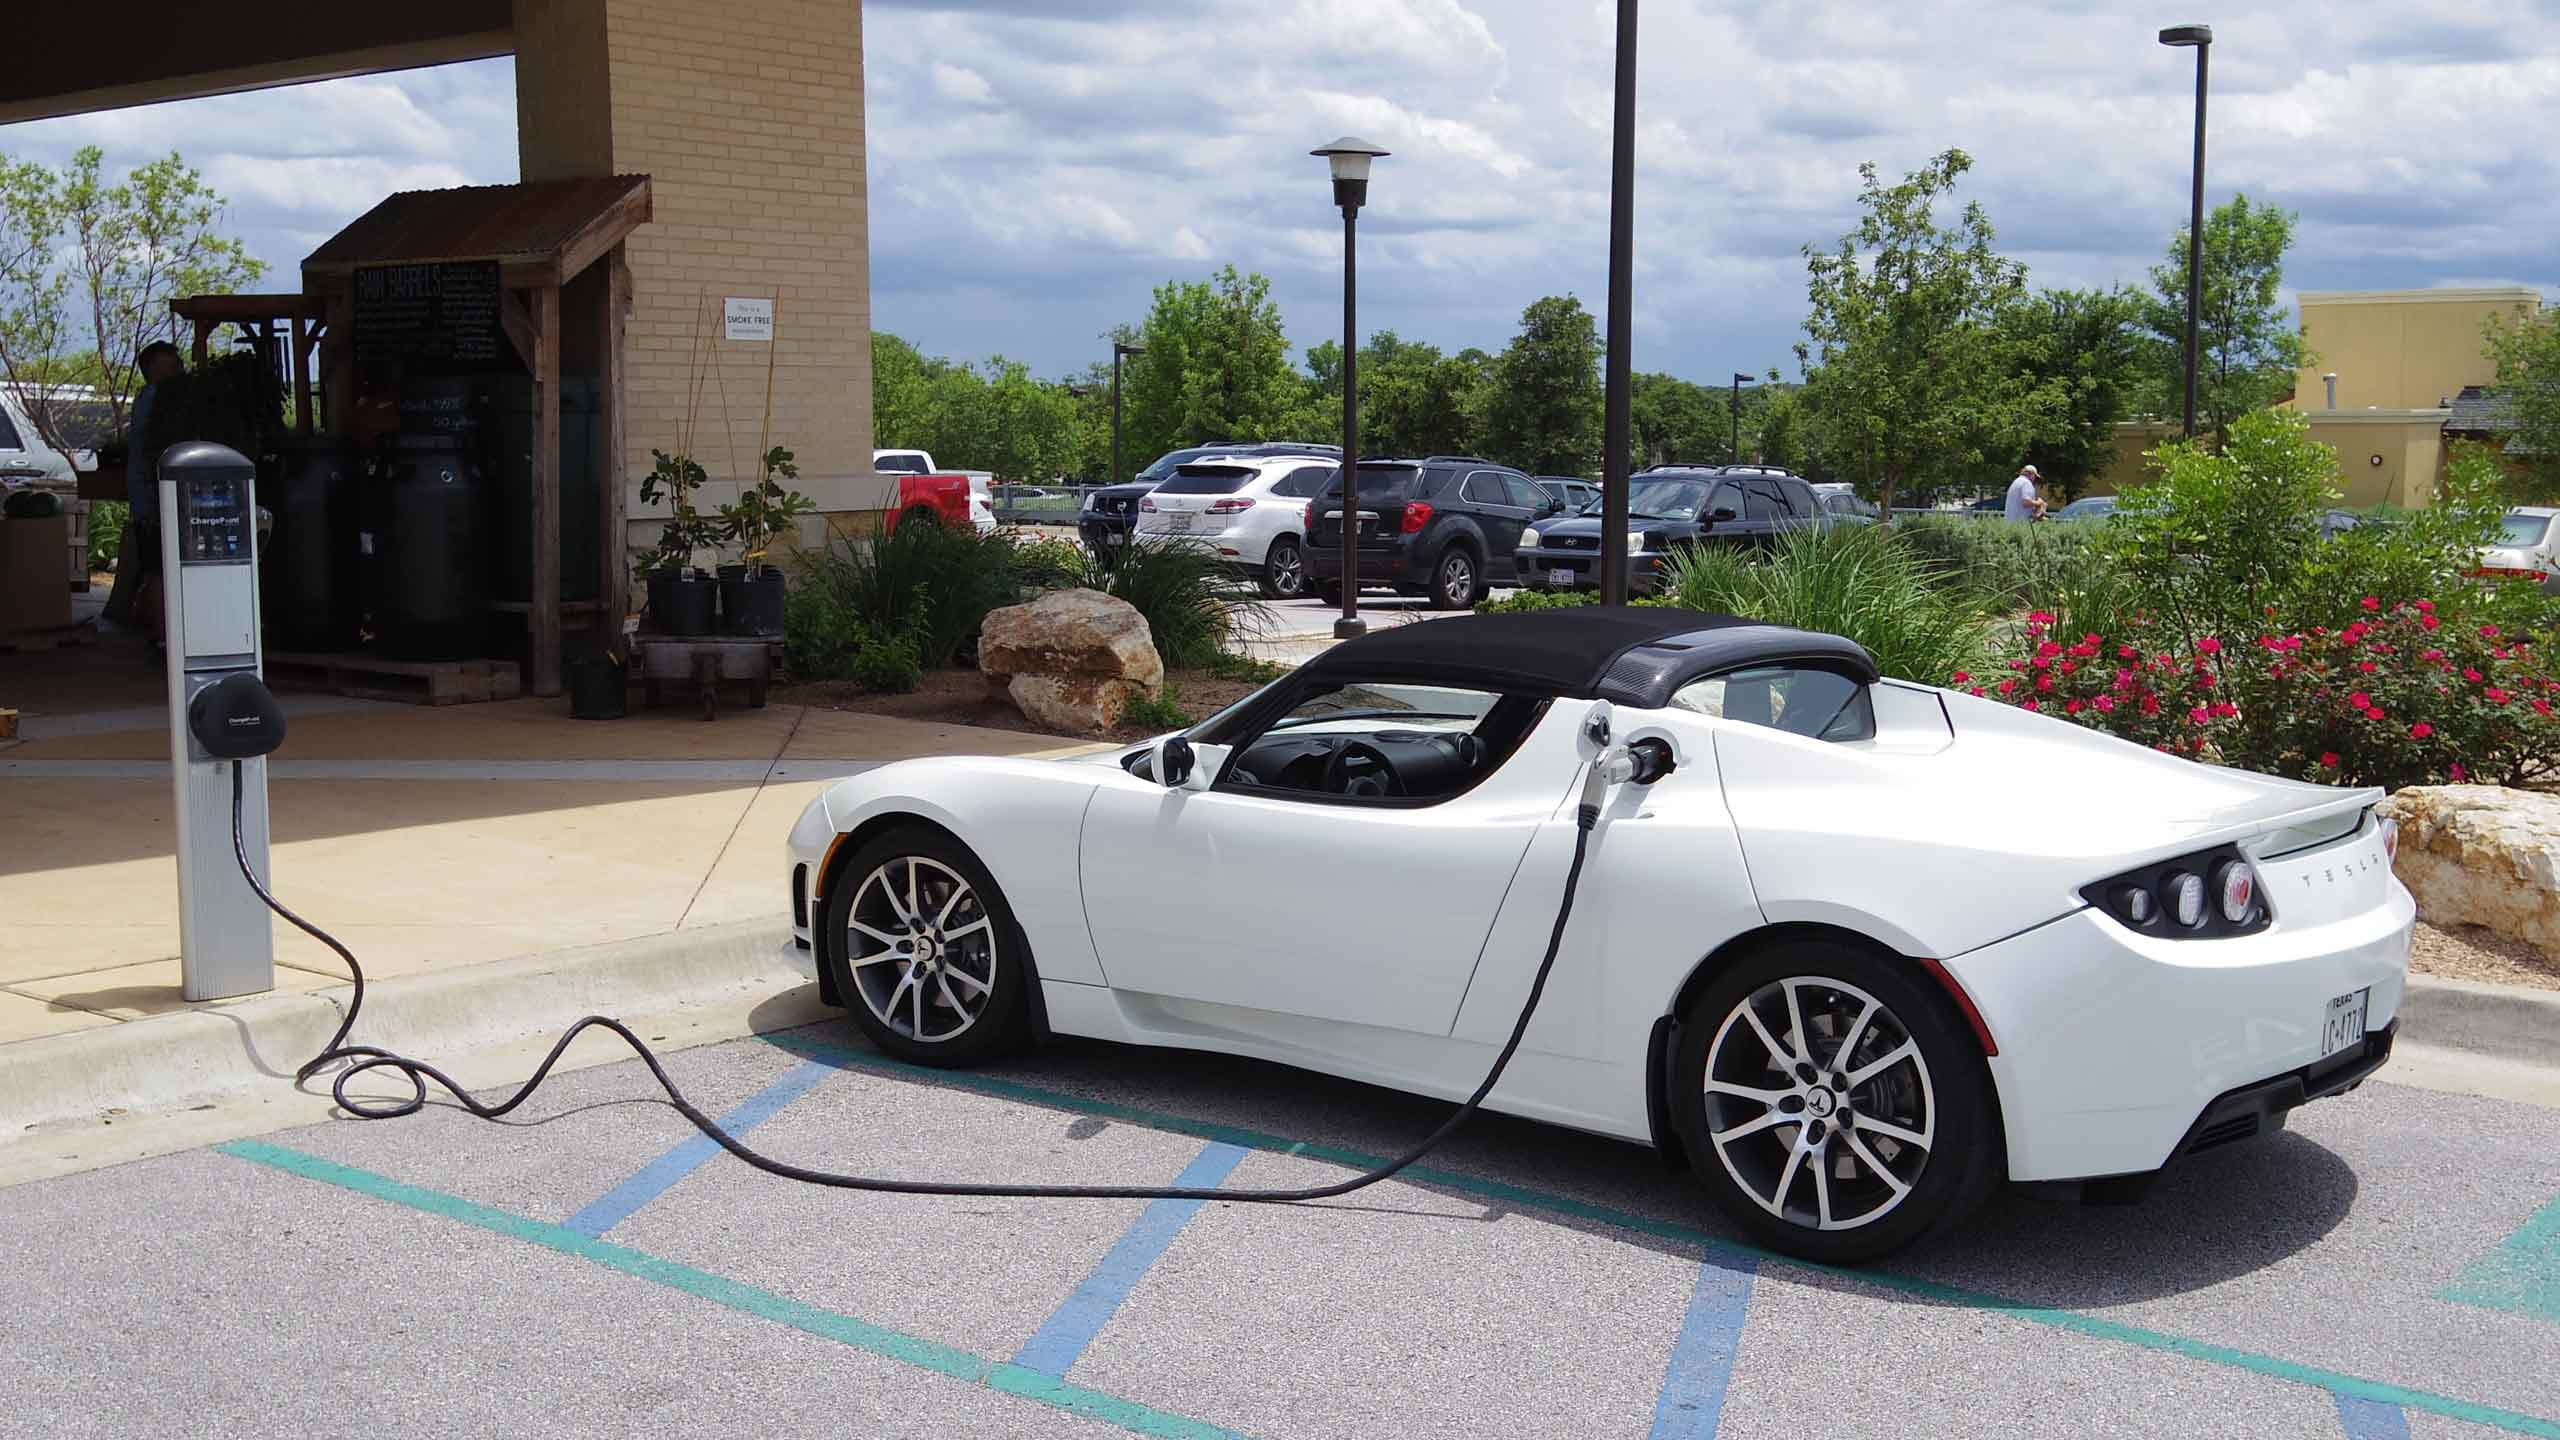 A Tesla electric car plugged into a charging station. PHOTO: ZOBEID ZUMA/FLICKR